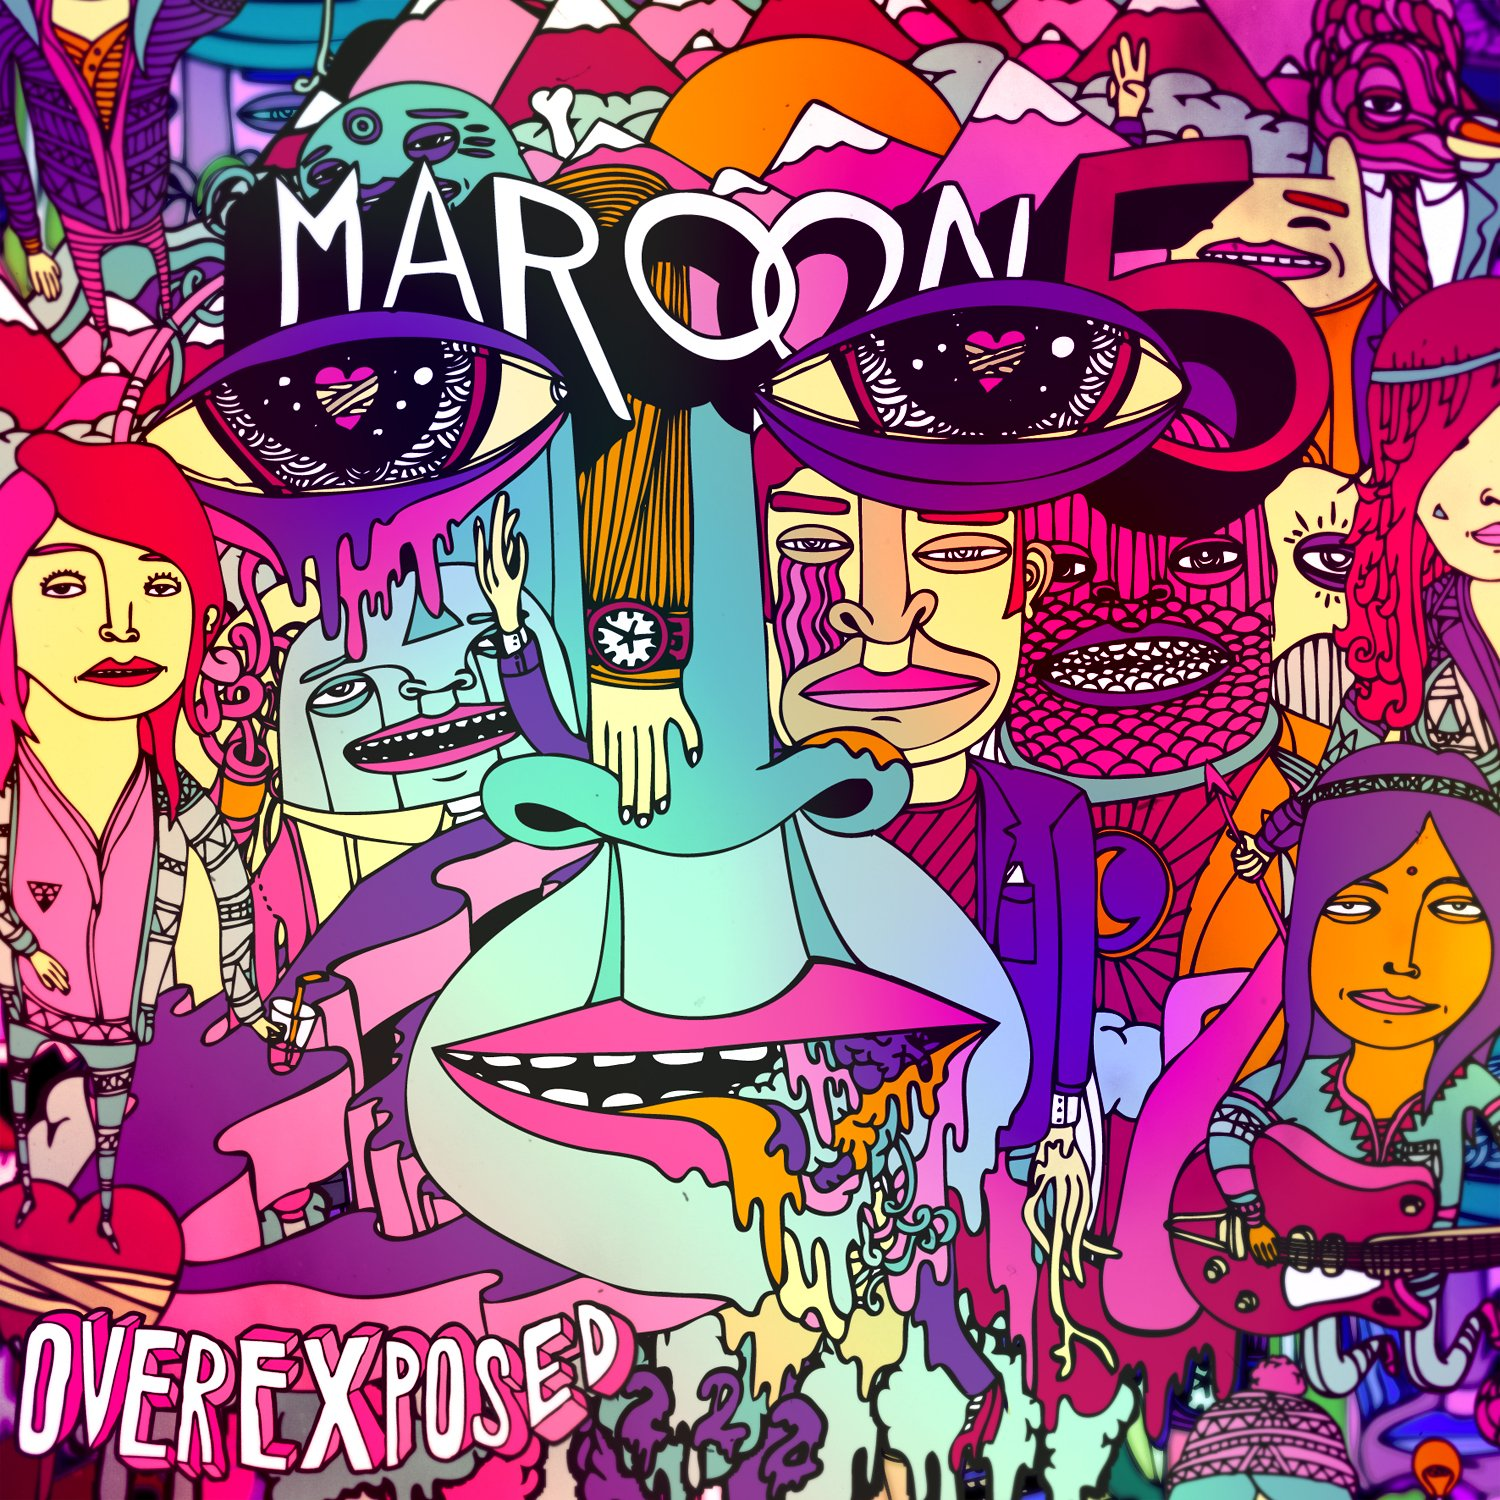 Maroon 5 - Overexposed [Deluxe Edition]